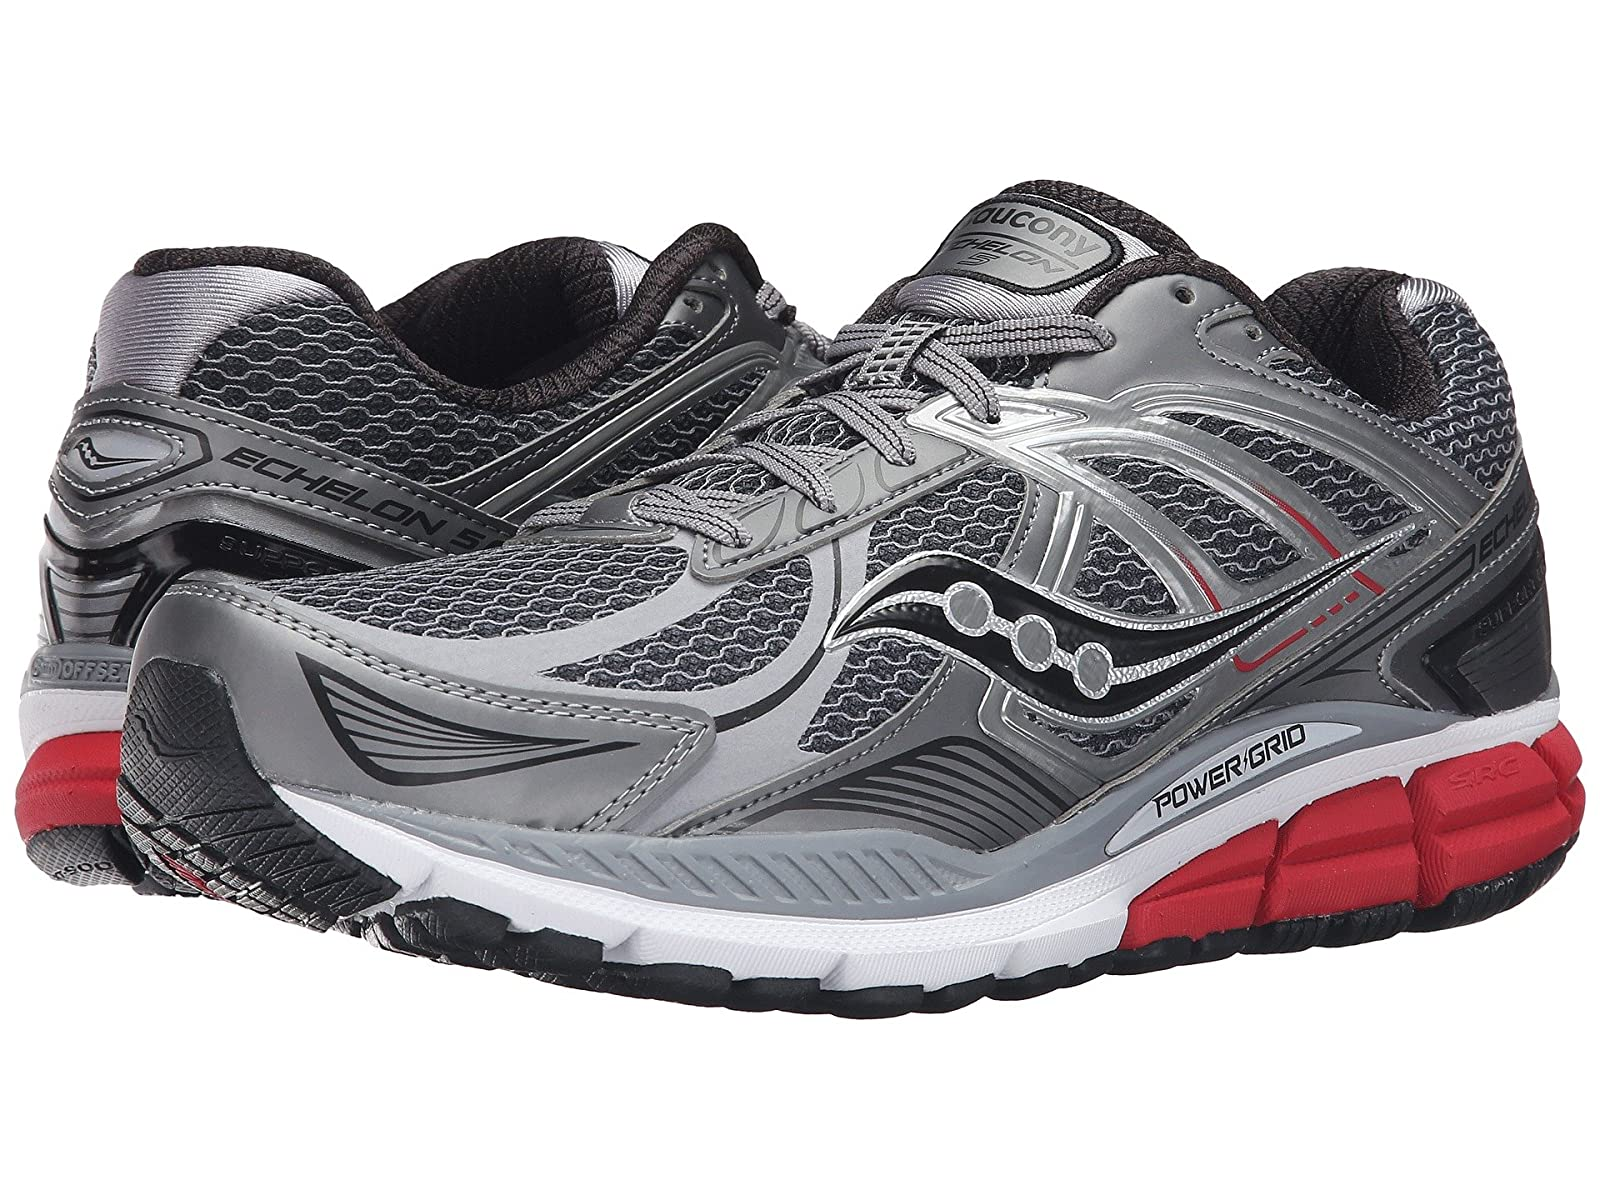 Saucony Echelon 5Cheap and distinctive eye-catching shoes